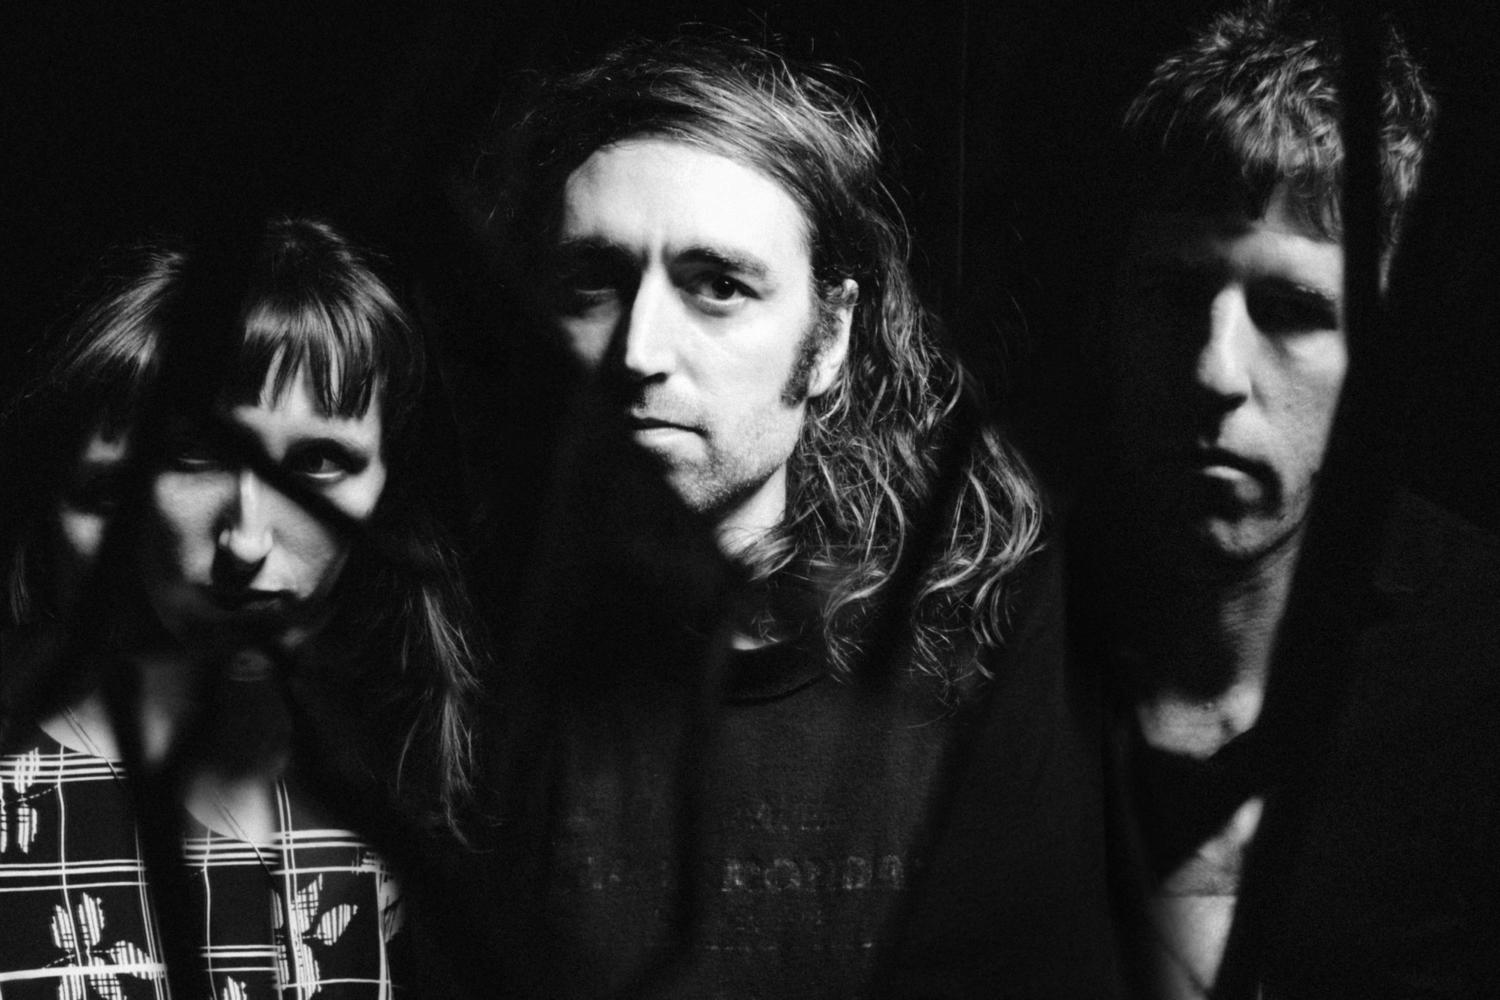 A Place To Bury Strangers announce new album, 'Pinned'